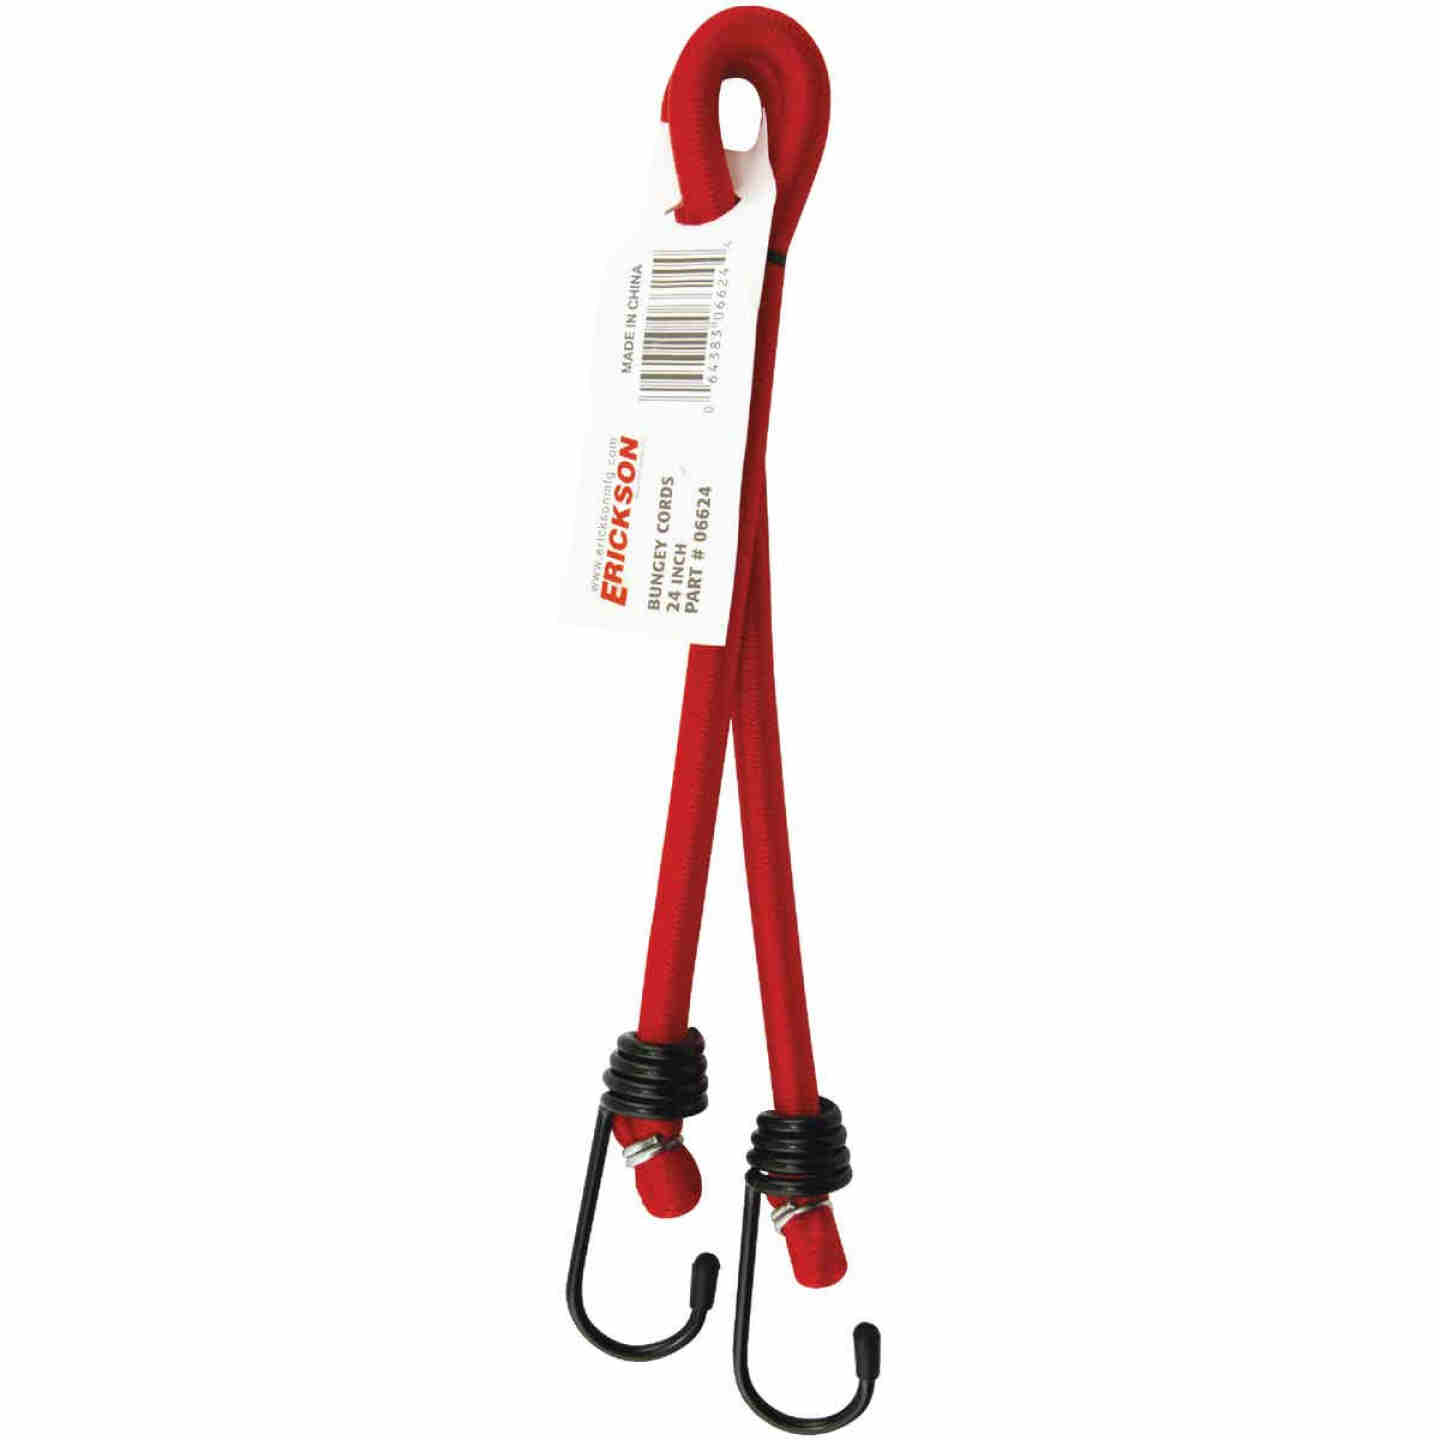 Erickson 1/4 In. x 24 In. Bungee Cord, Assorted Colors Image 2